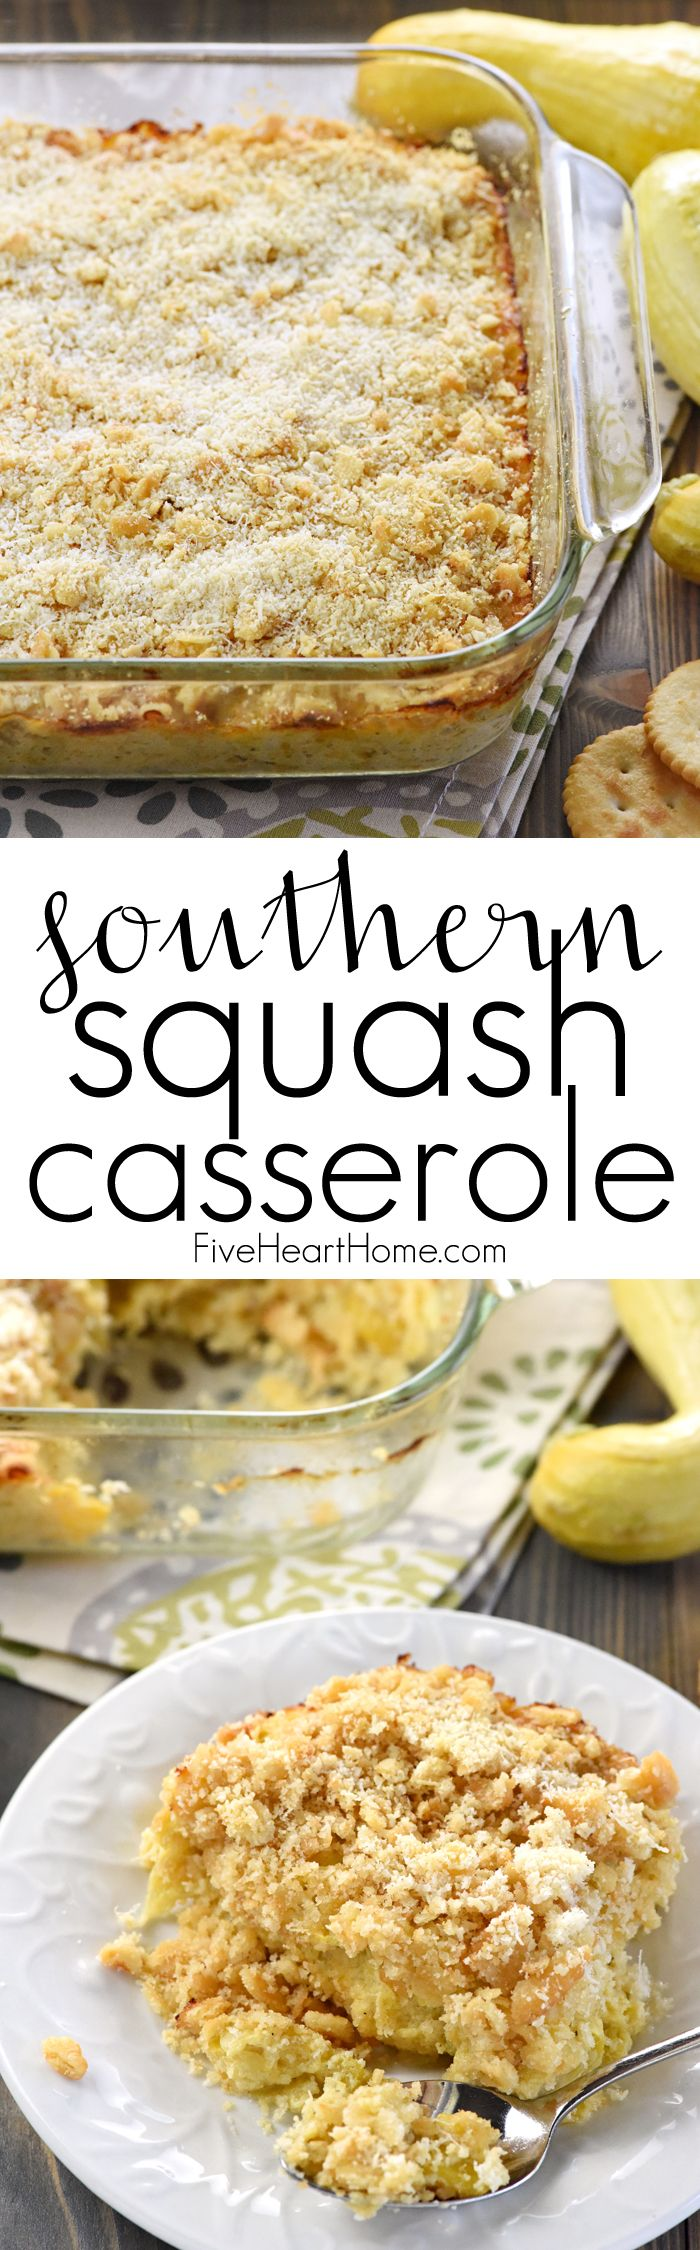 Southern Squash Casserole Recipes Food Food Dishes